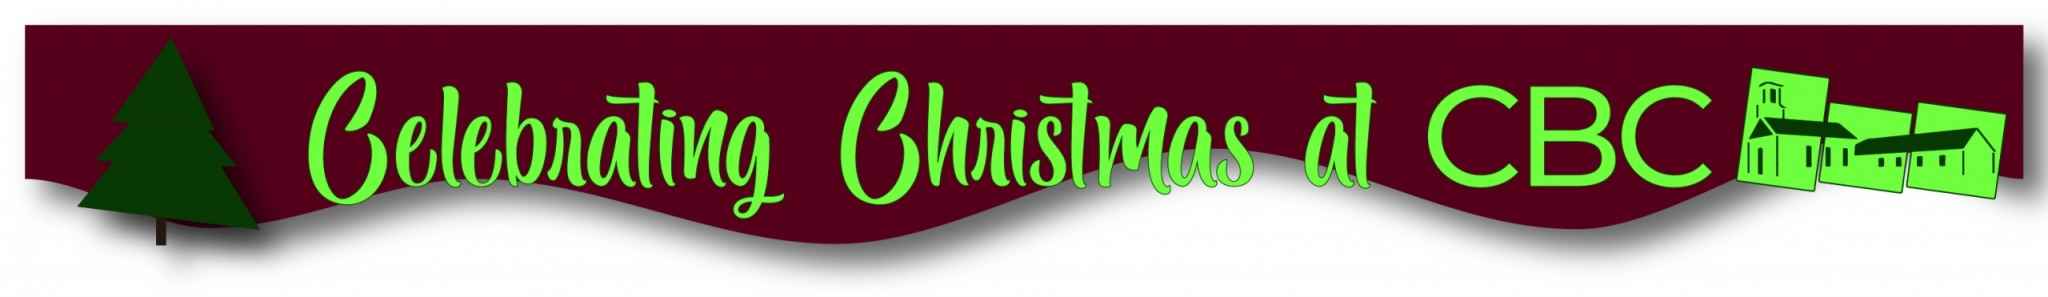 Banner for Christmas ministries